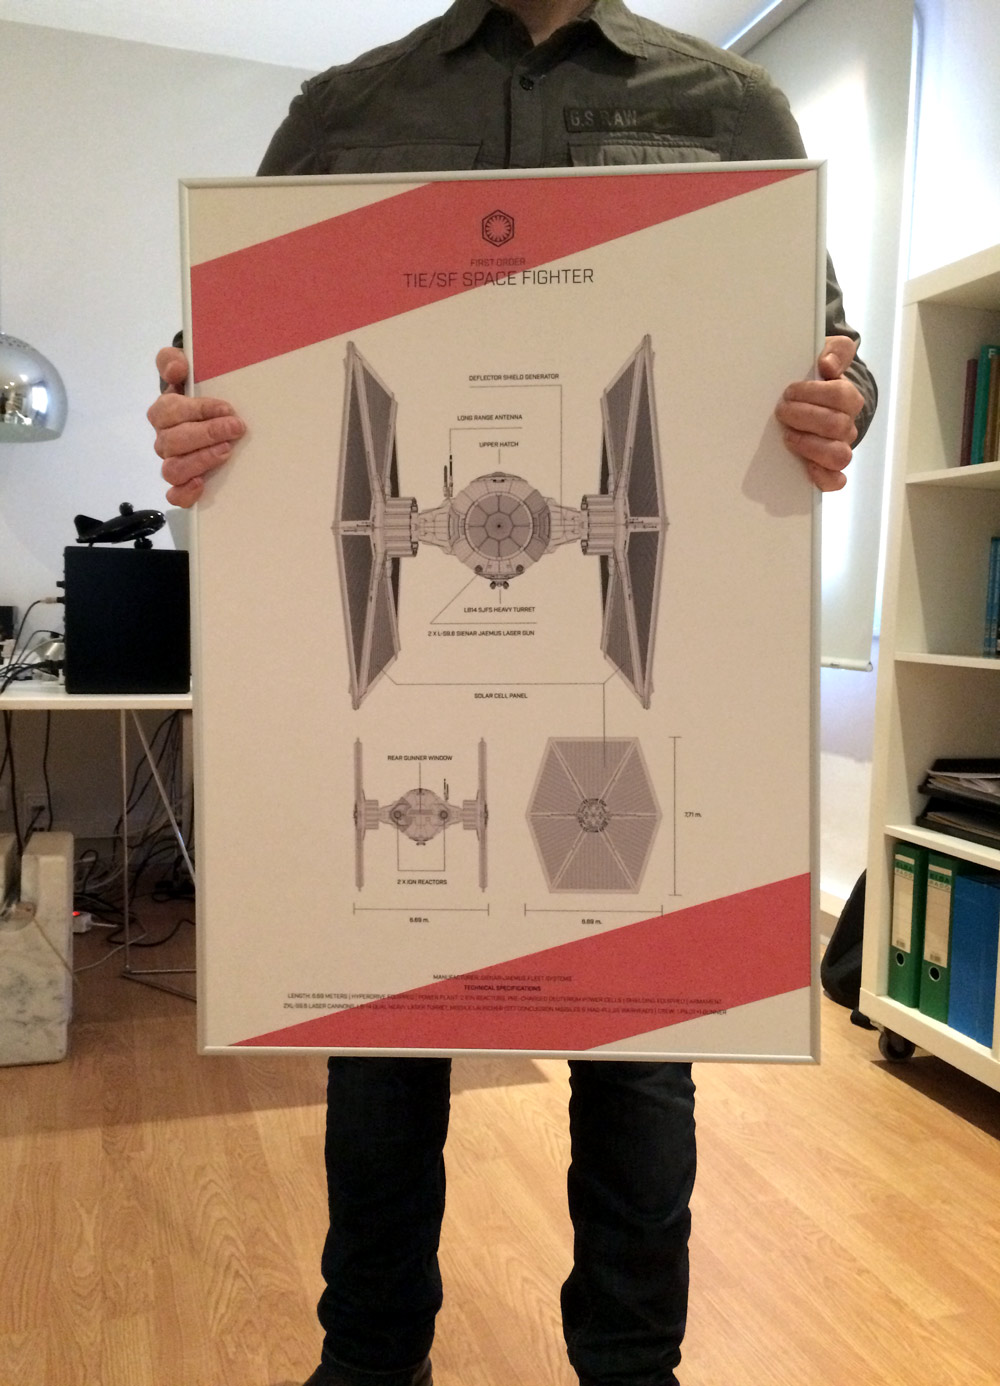 Star Wars The Force Awakens Special Edition posters